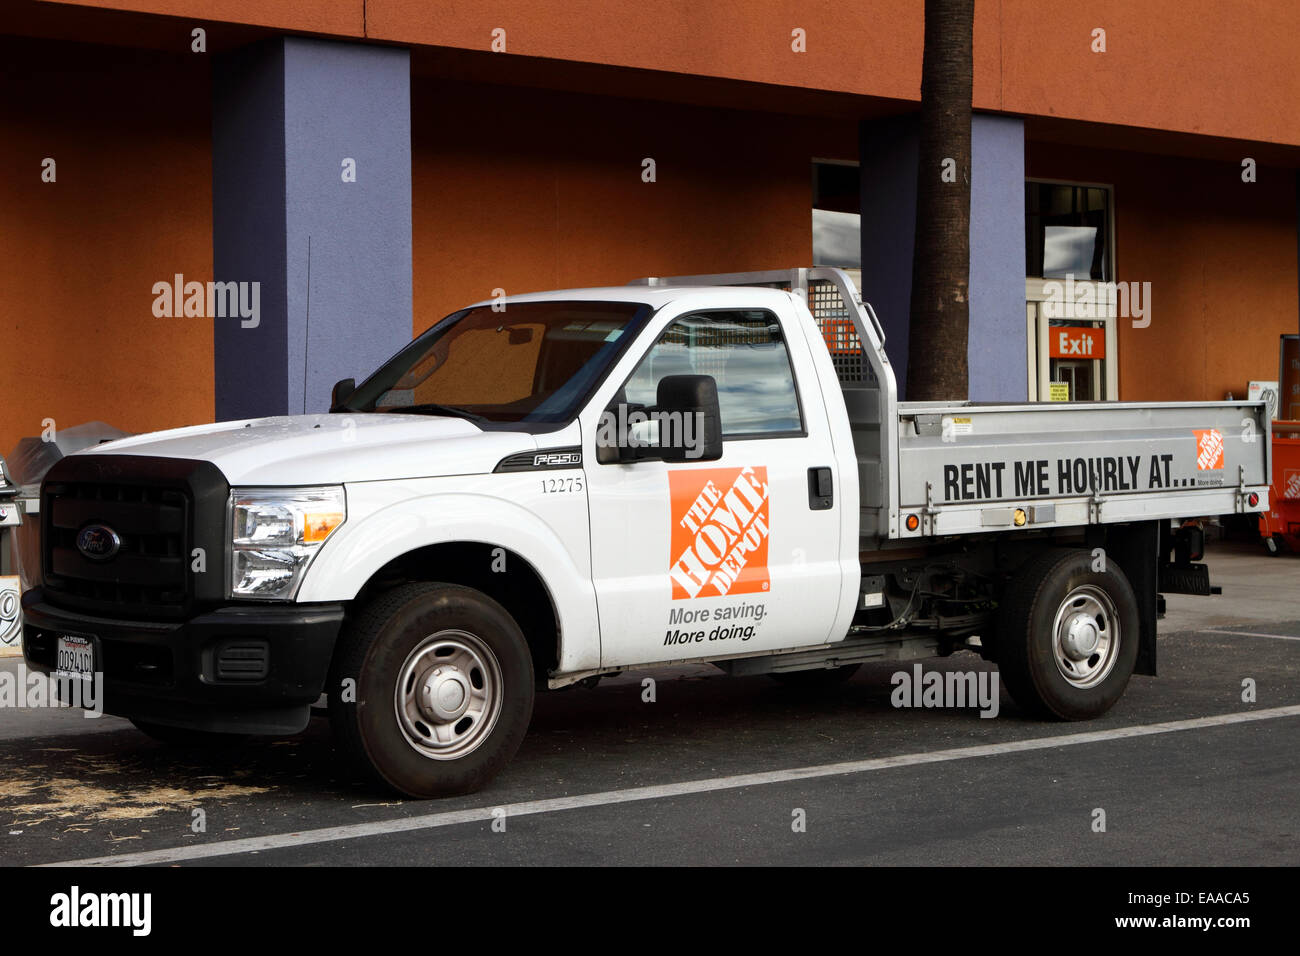 home depot truck for rent outside a store building in tustin stock rh alamy com